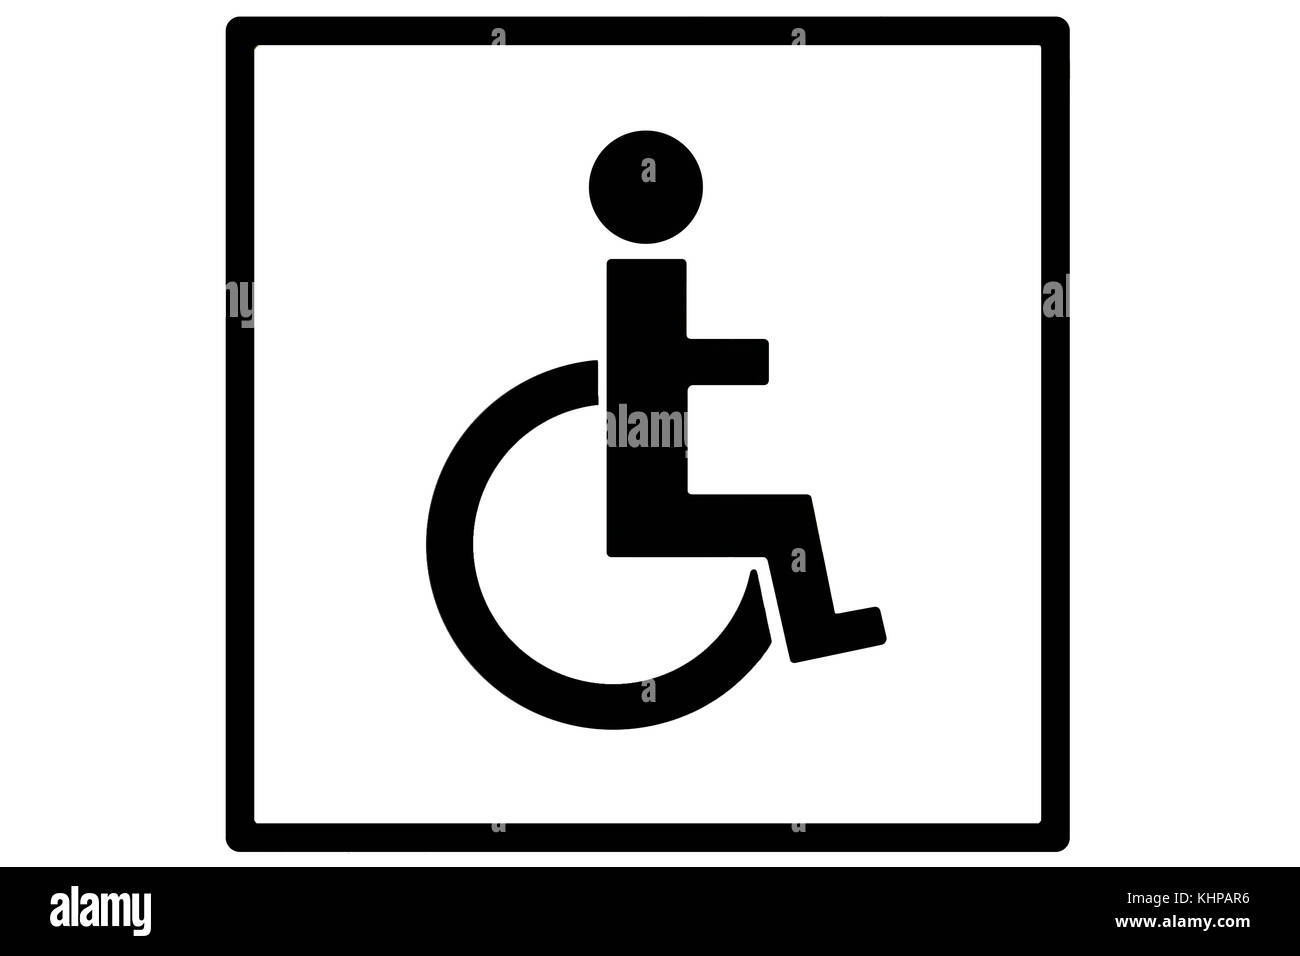 A sign or signage depicting a person in a wheelchair in black silhouetted on white within a square black box, as - Stock Image